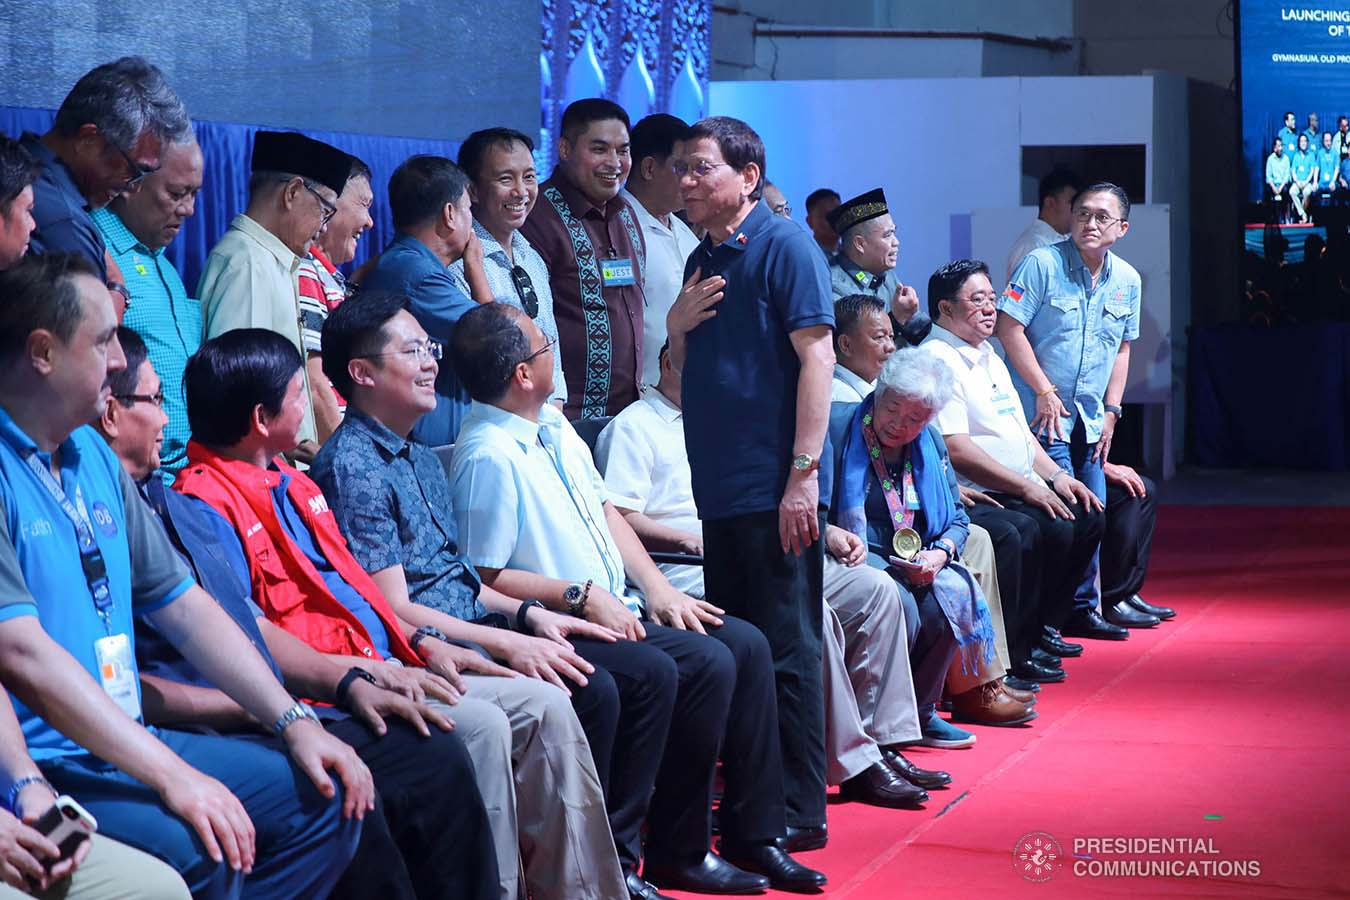 President Rodrigo Roa Duterte interacts with the guests during the launch of the second phase of the decommissioning of Moro Islamic Liberation Front combatants and weapons at the Old Provincial Capitol Compound in Sultan Kudarat, Maguindanao on September 7, 2019. ROBINSON NIÑAL JR./PRESIDENTIAL PHOTO